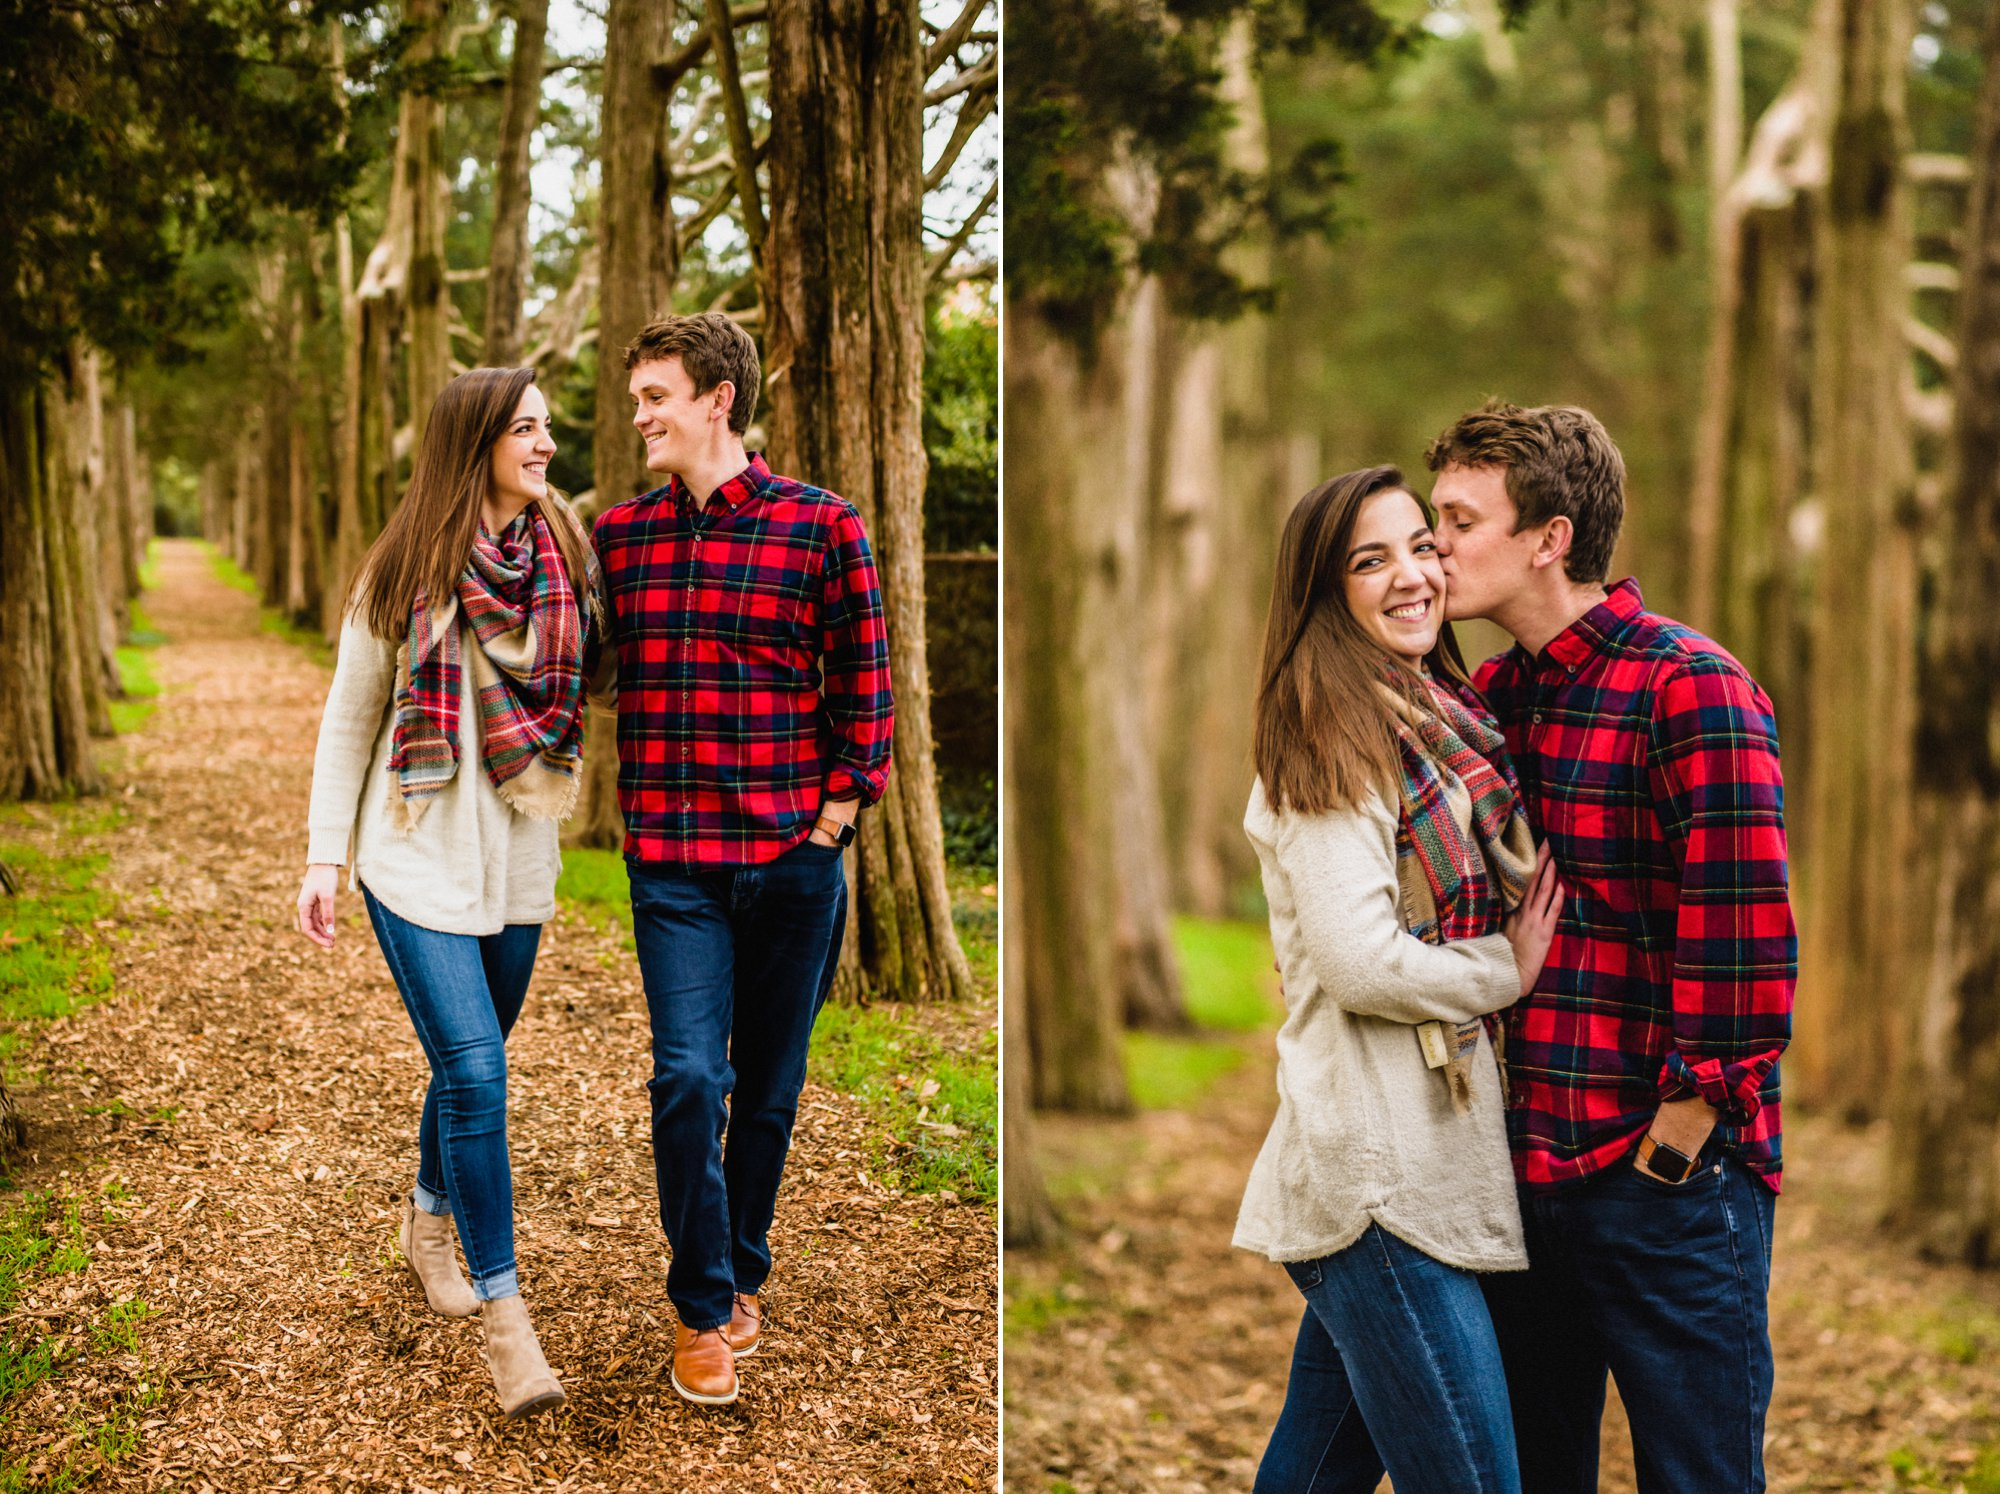 engagement-photography-88-love-stories-17.jpg